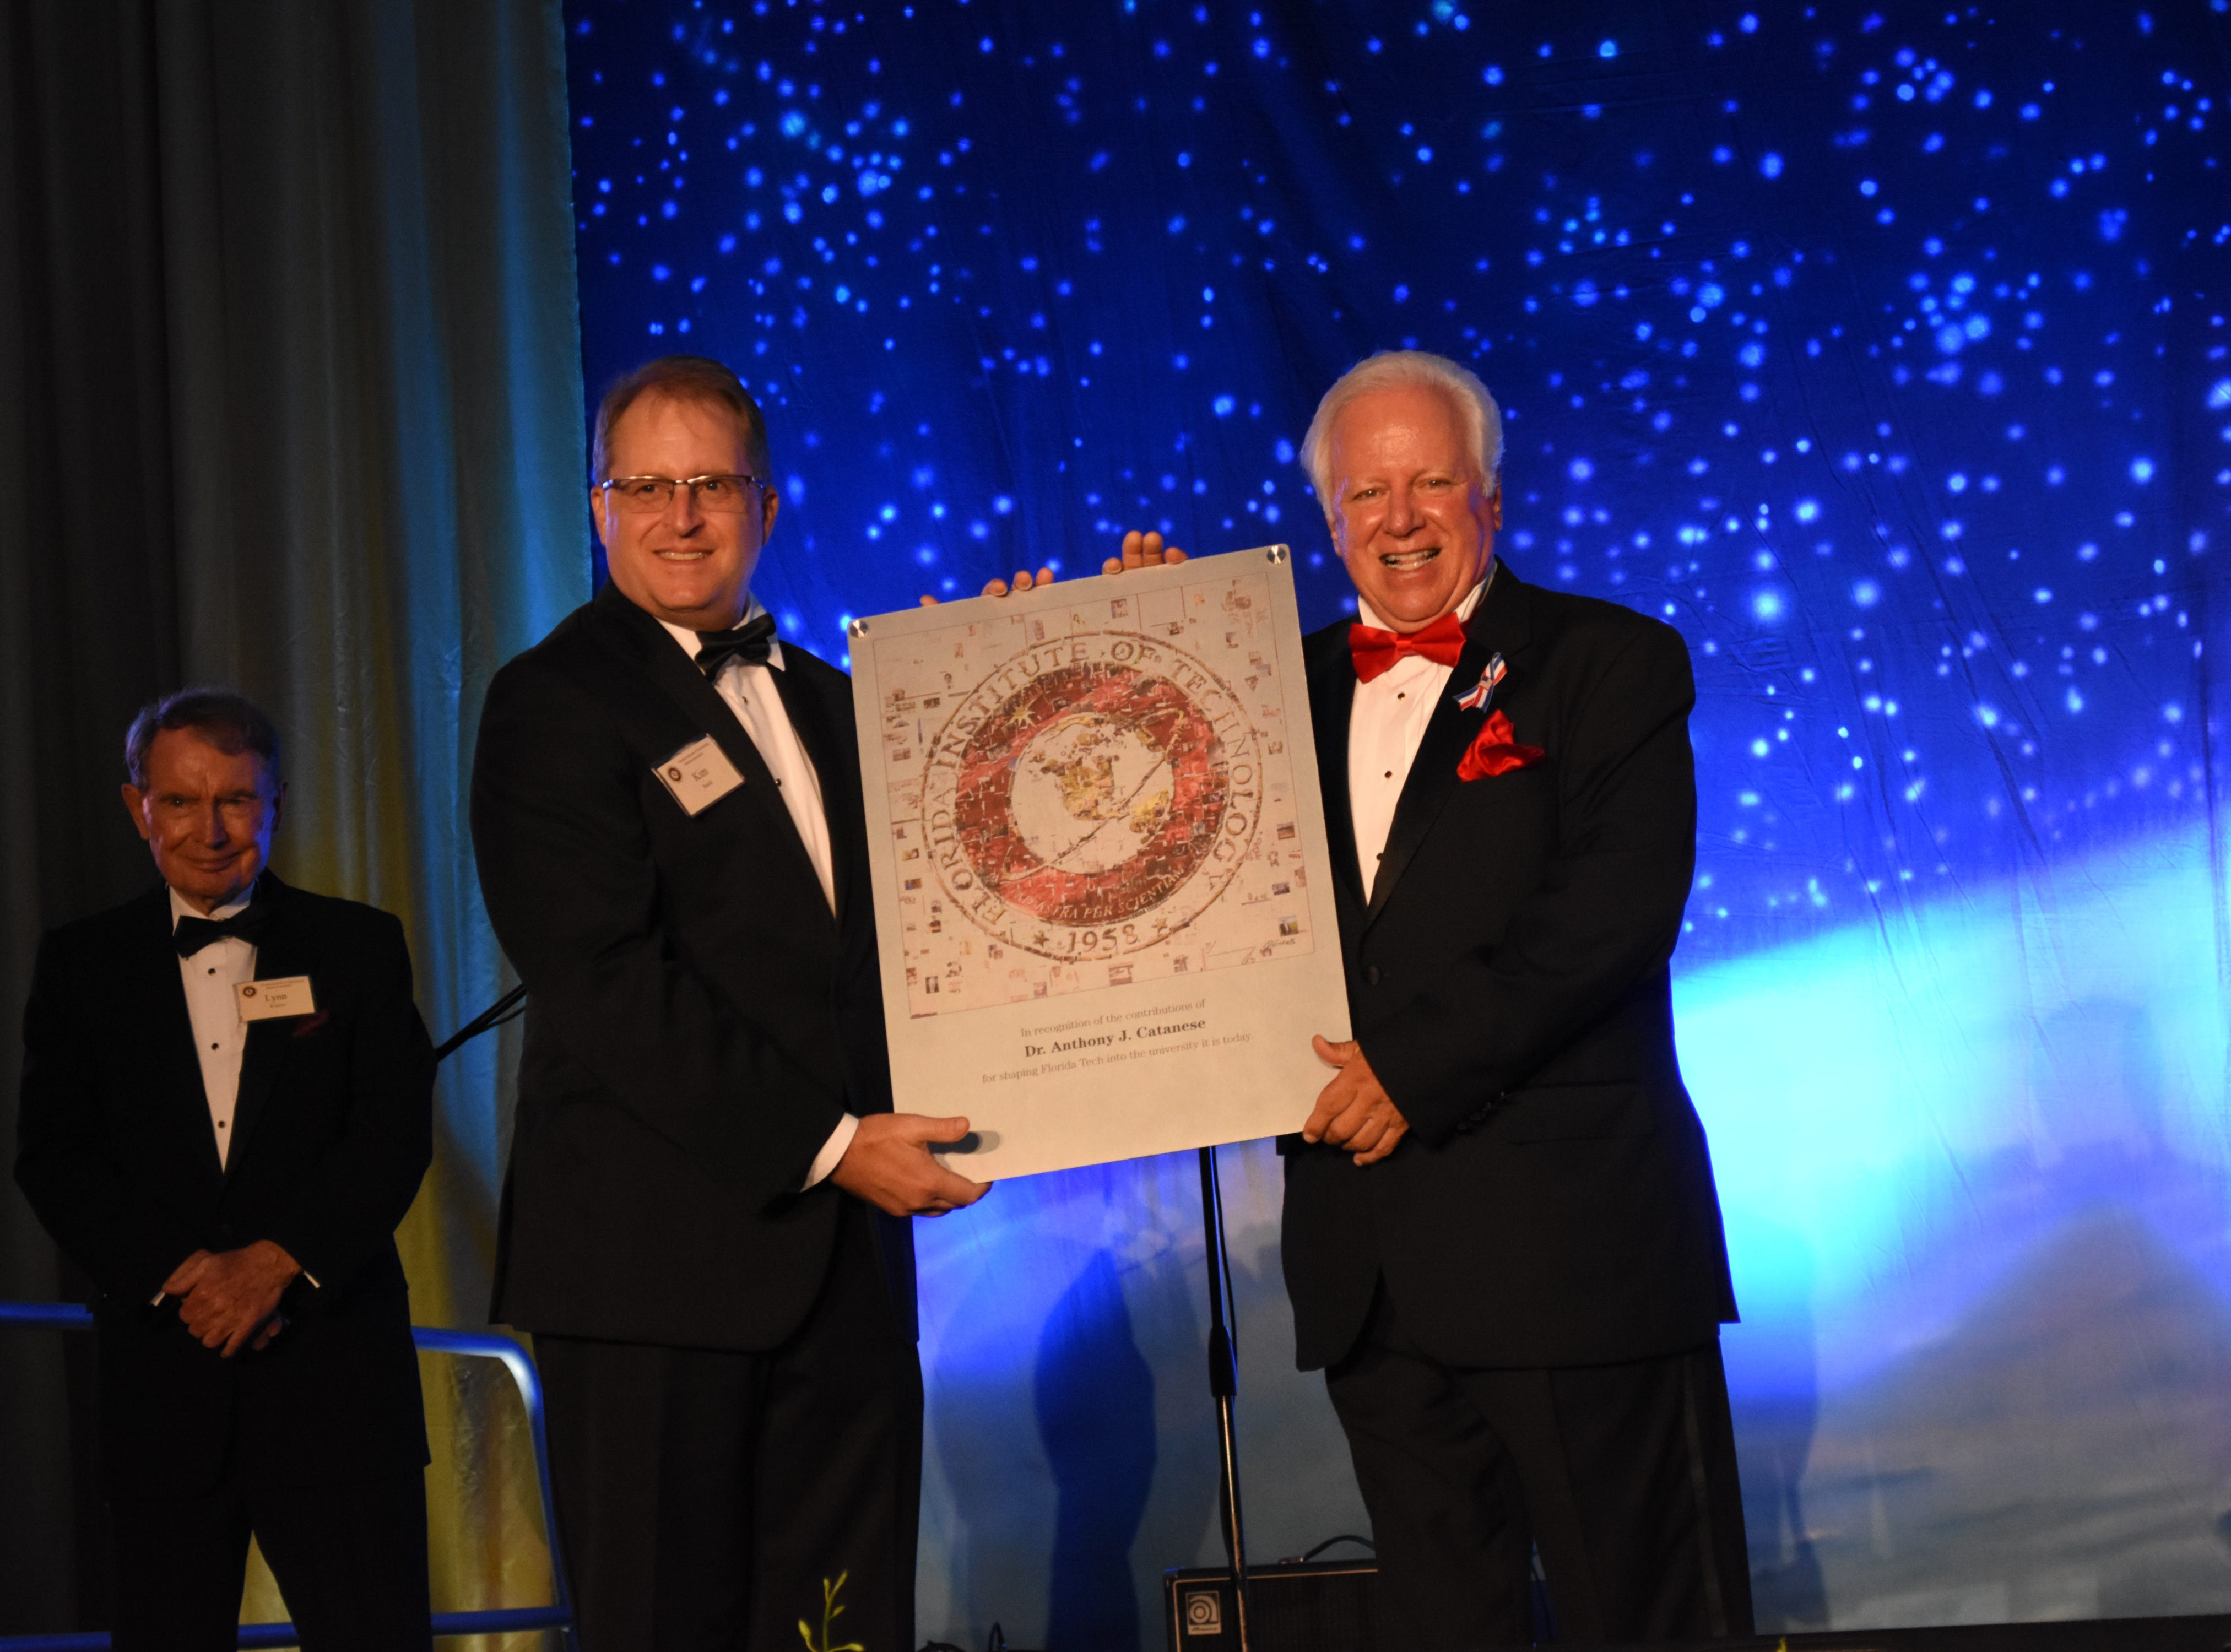 Florida Tech's fourth president, Dr. Anthony J. Catanese, is recognized for his accomplishments that helped shape the school to what is is today at Florida Tech's 60th Anniversary Homecoming Gala Oct. 13, 2018, at the Clemente Center.